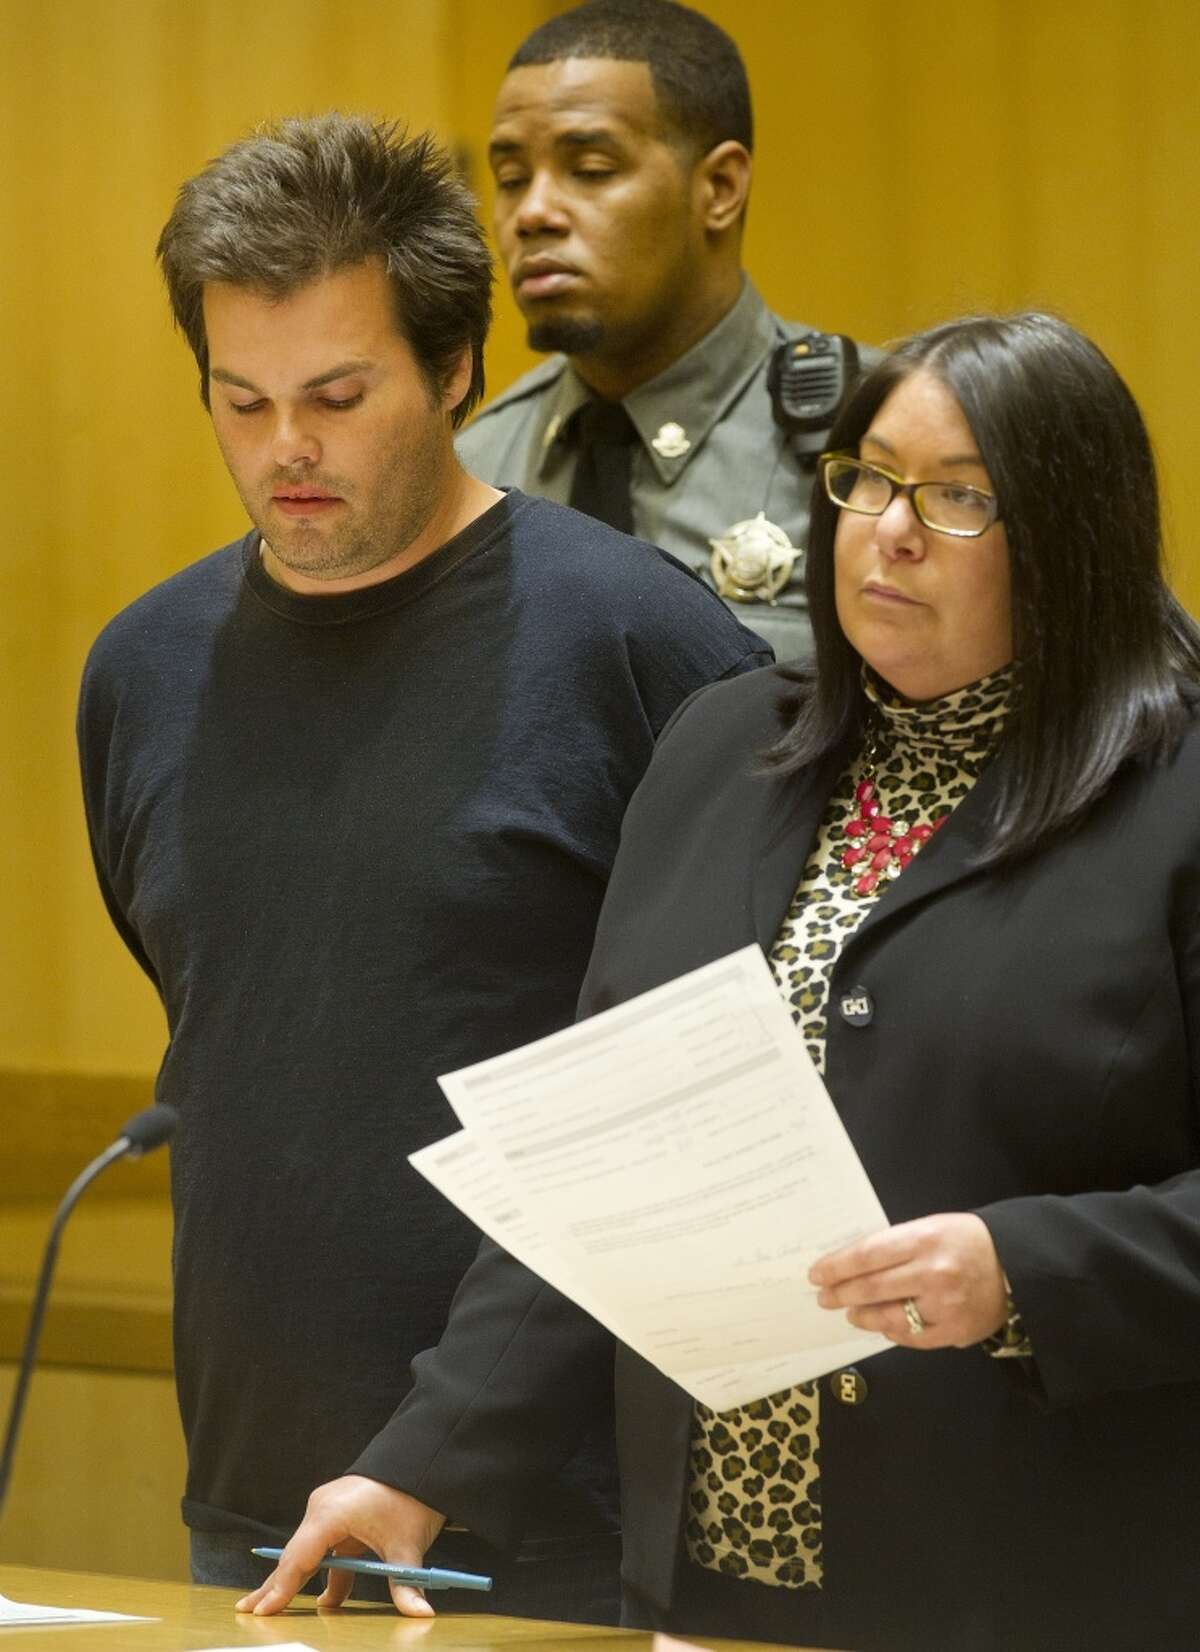 Timothy Anderson, 42, stands with attorney April Pramer as he is arraigned in State Superior Court in Stamford, Conn., on Tuesday, March 24, 2015, on charges of unlawful restraint, disorderly conduct and two charges of assault.